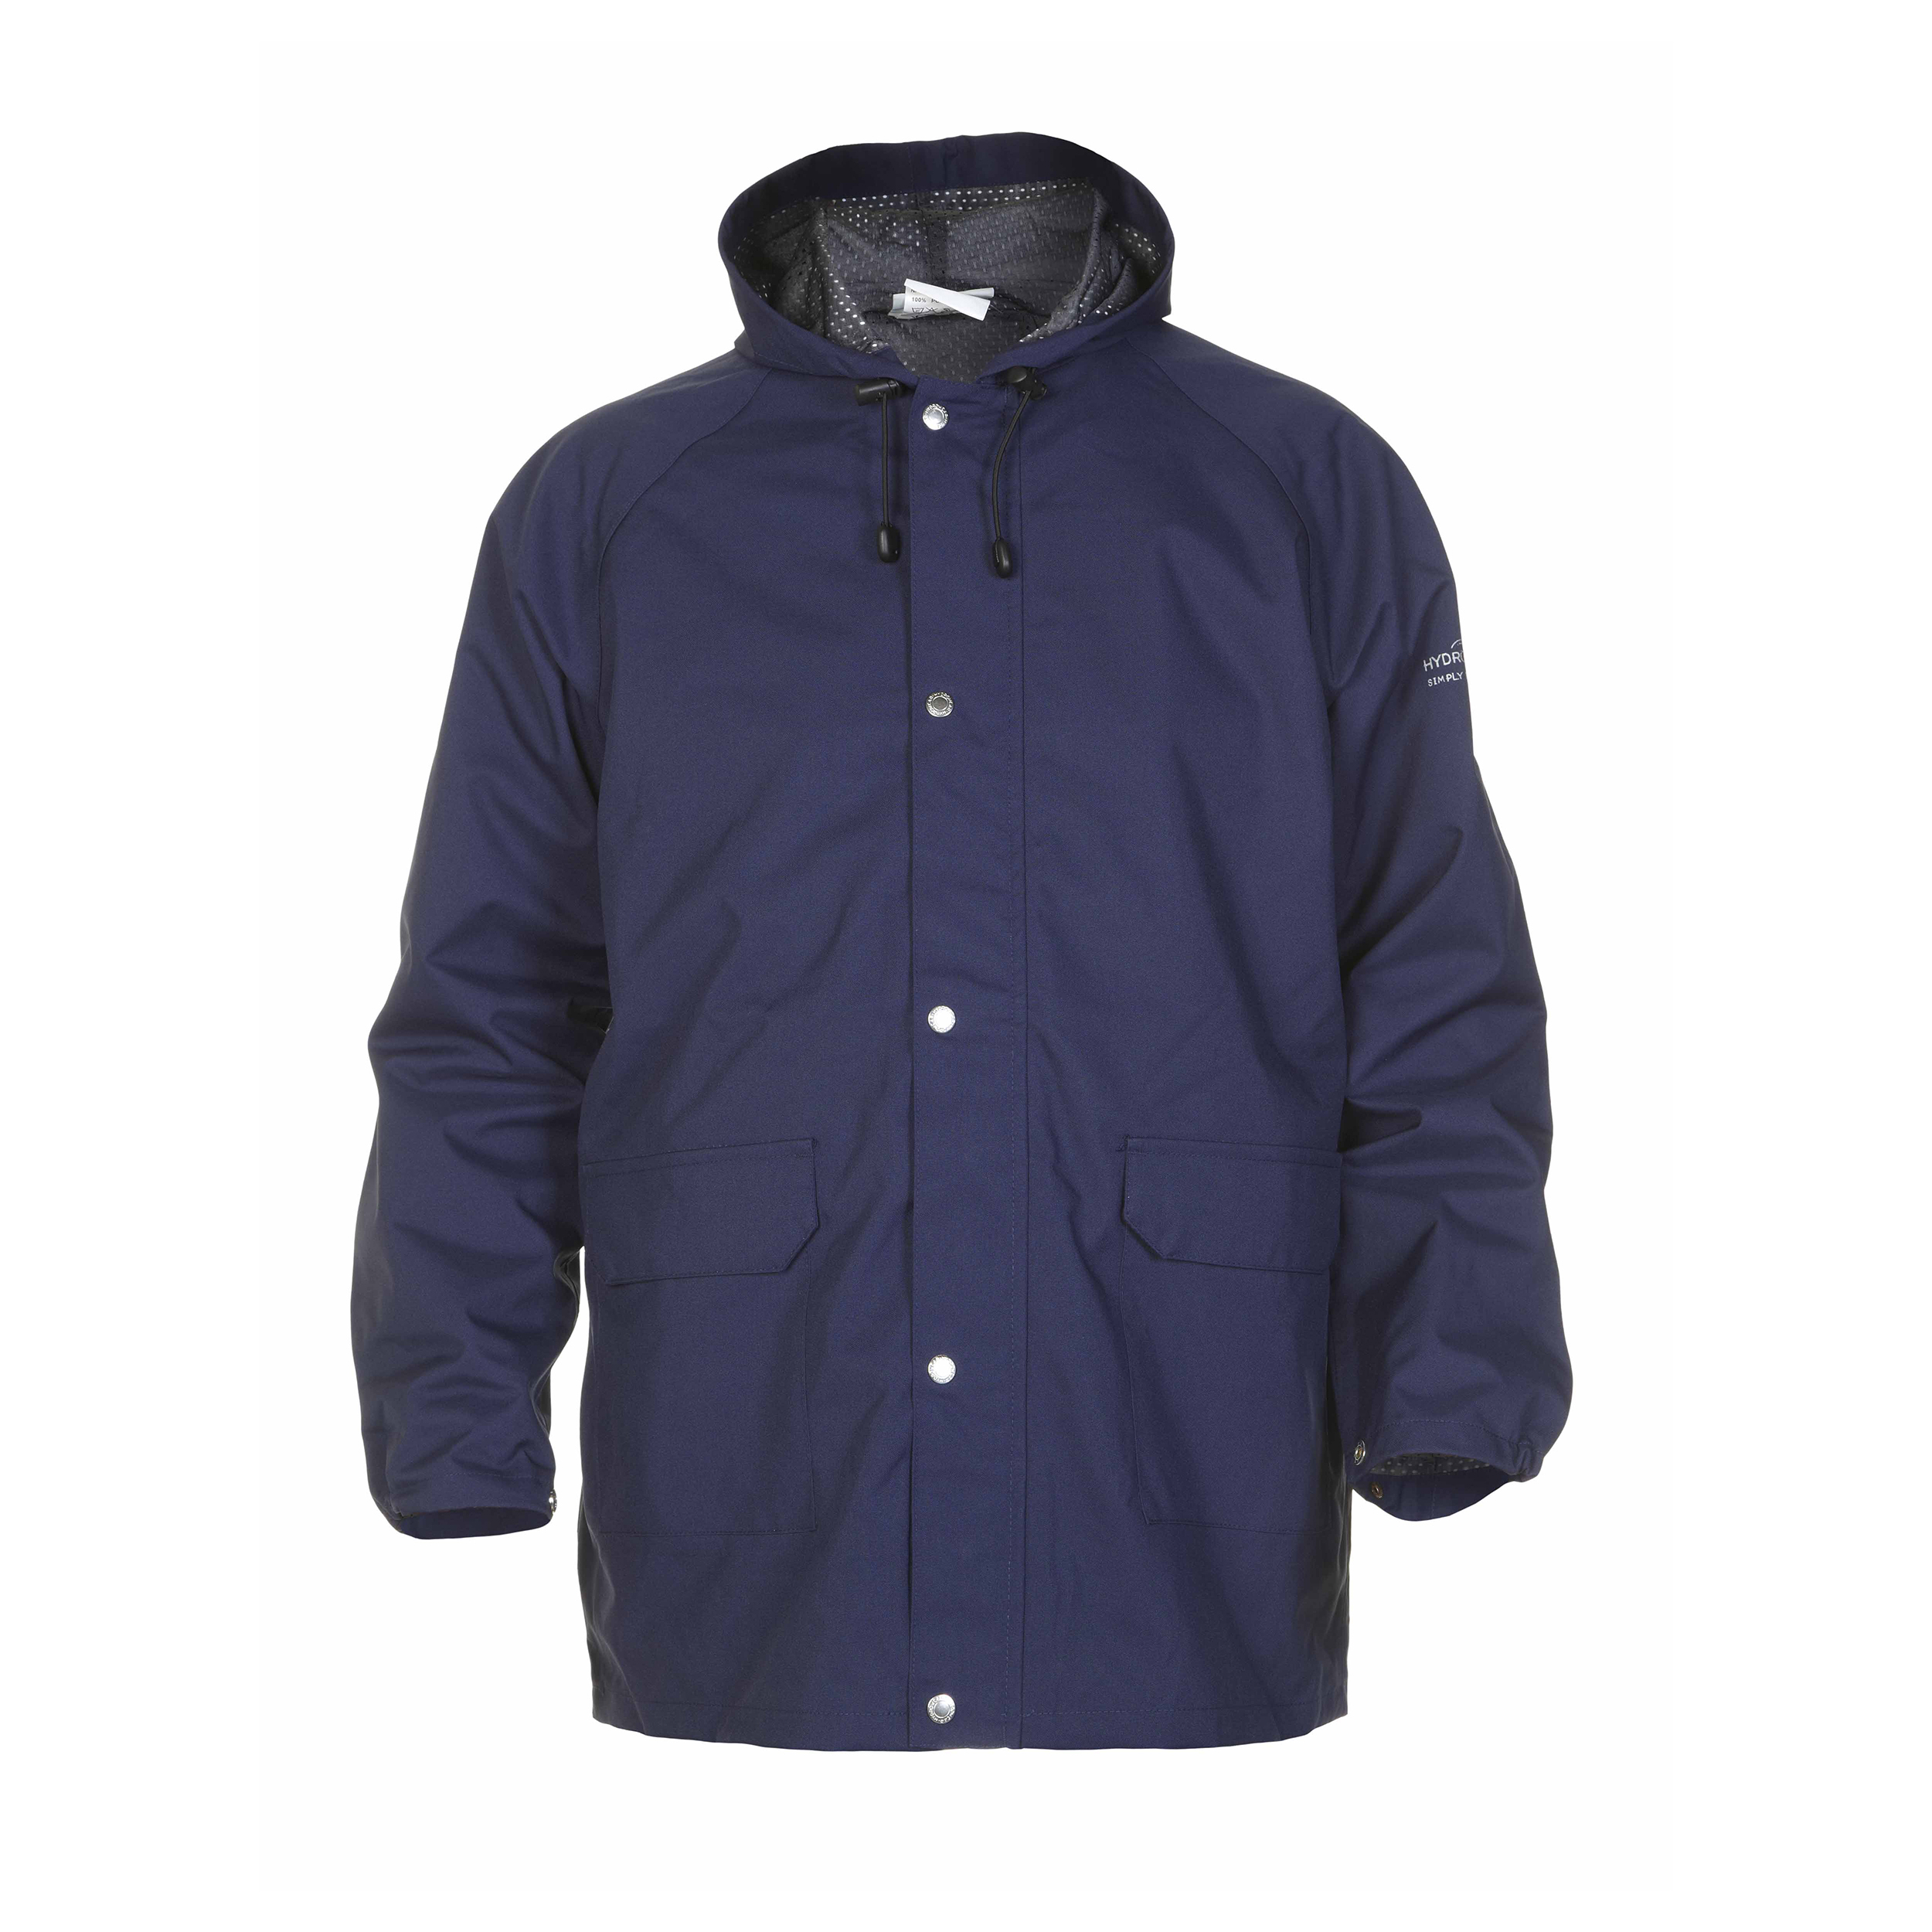 High Visibility Hydrowear Ulft SNS Waterproof Jacket Polyester Small Navy Blue Ref HYD072400NS *Up to 3 Day Leadtime*